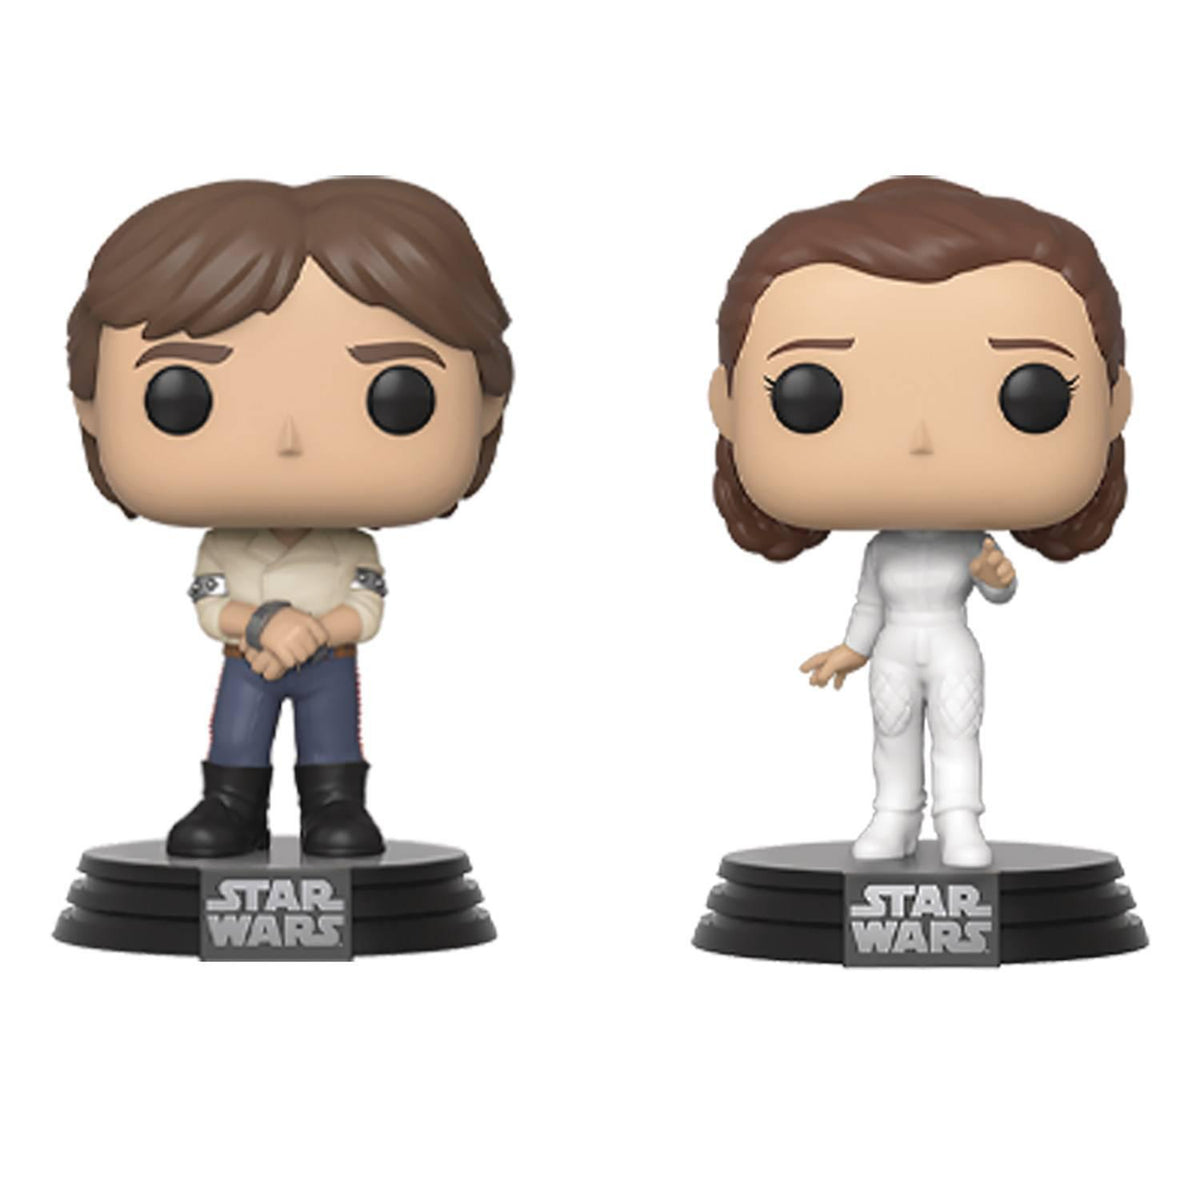 POP STAR WARS HAN AND LEIA 2 PACK